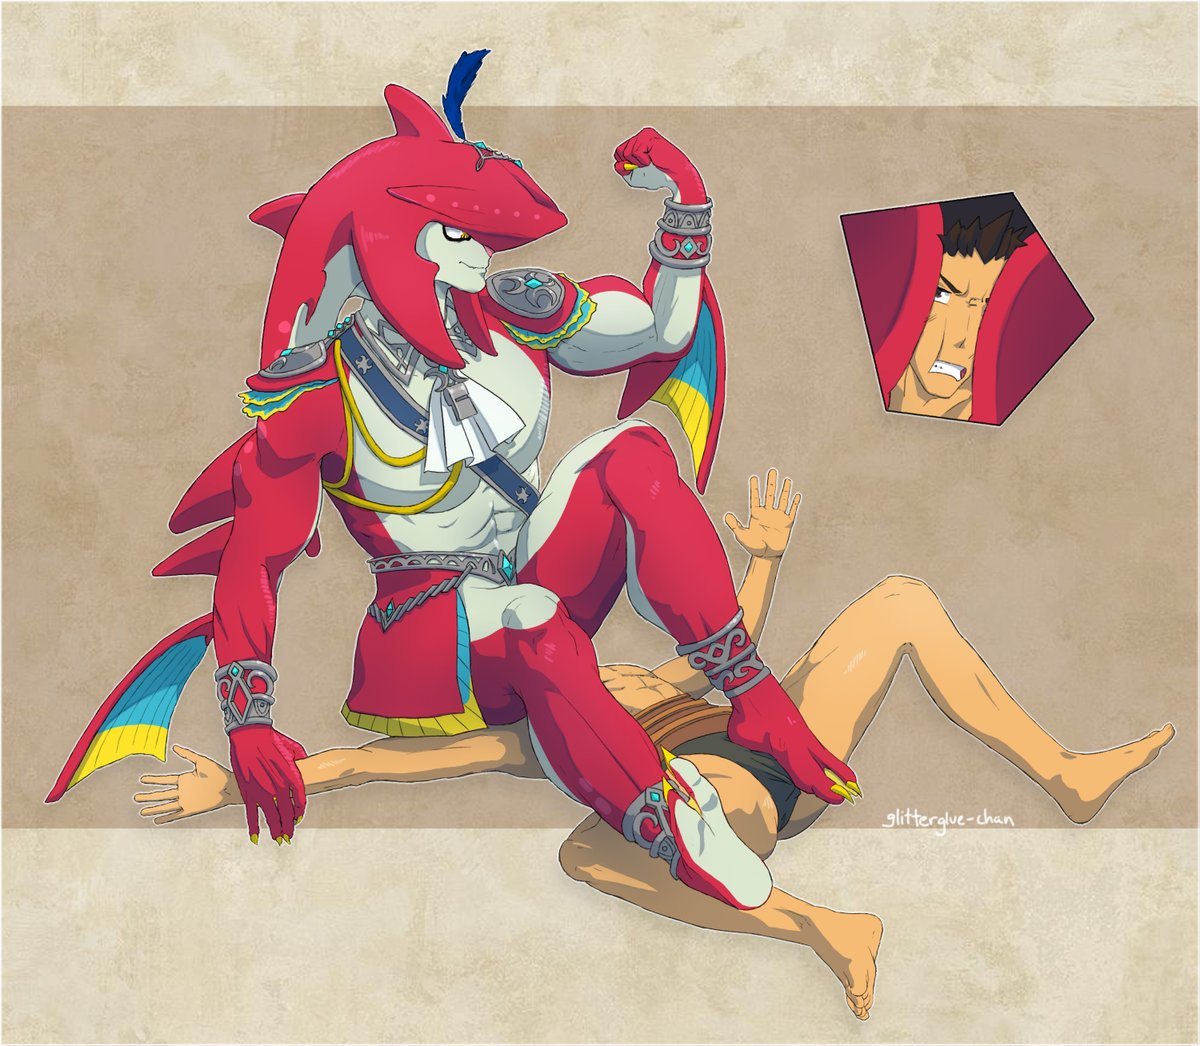 Slightly less old Sidon commission >:D #Zelda #sidon #bara #yaoi #muscle #musclegrowth https://t.co/sfHd1ZaE3E